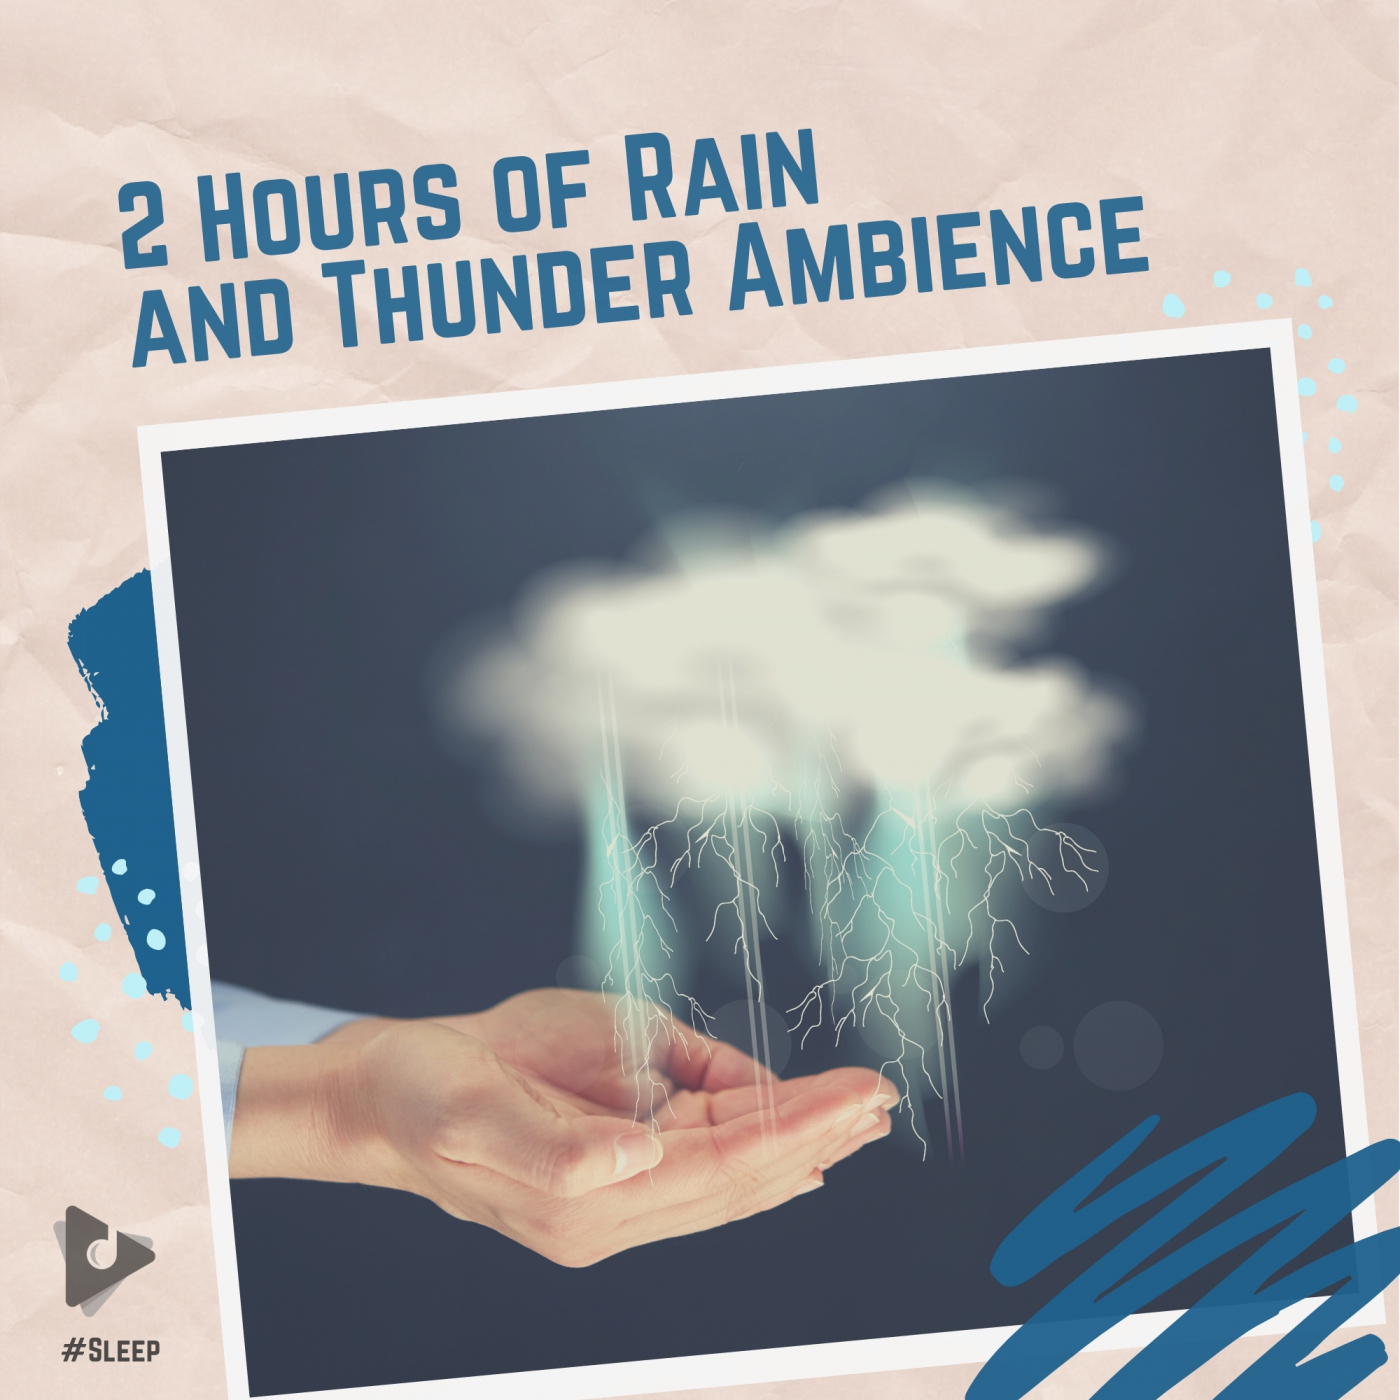 2 Hours of Rain and Thunder Ambience